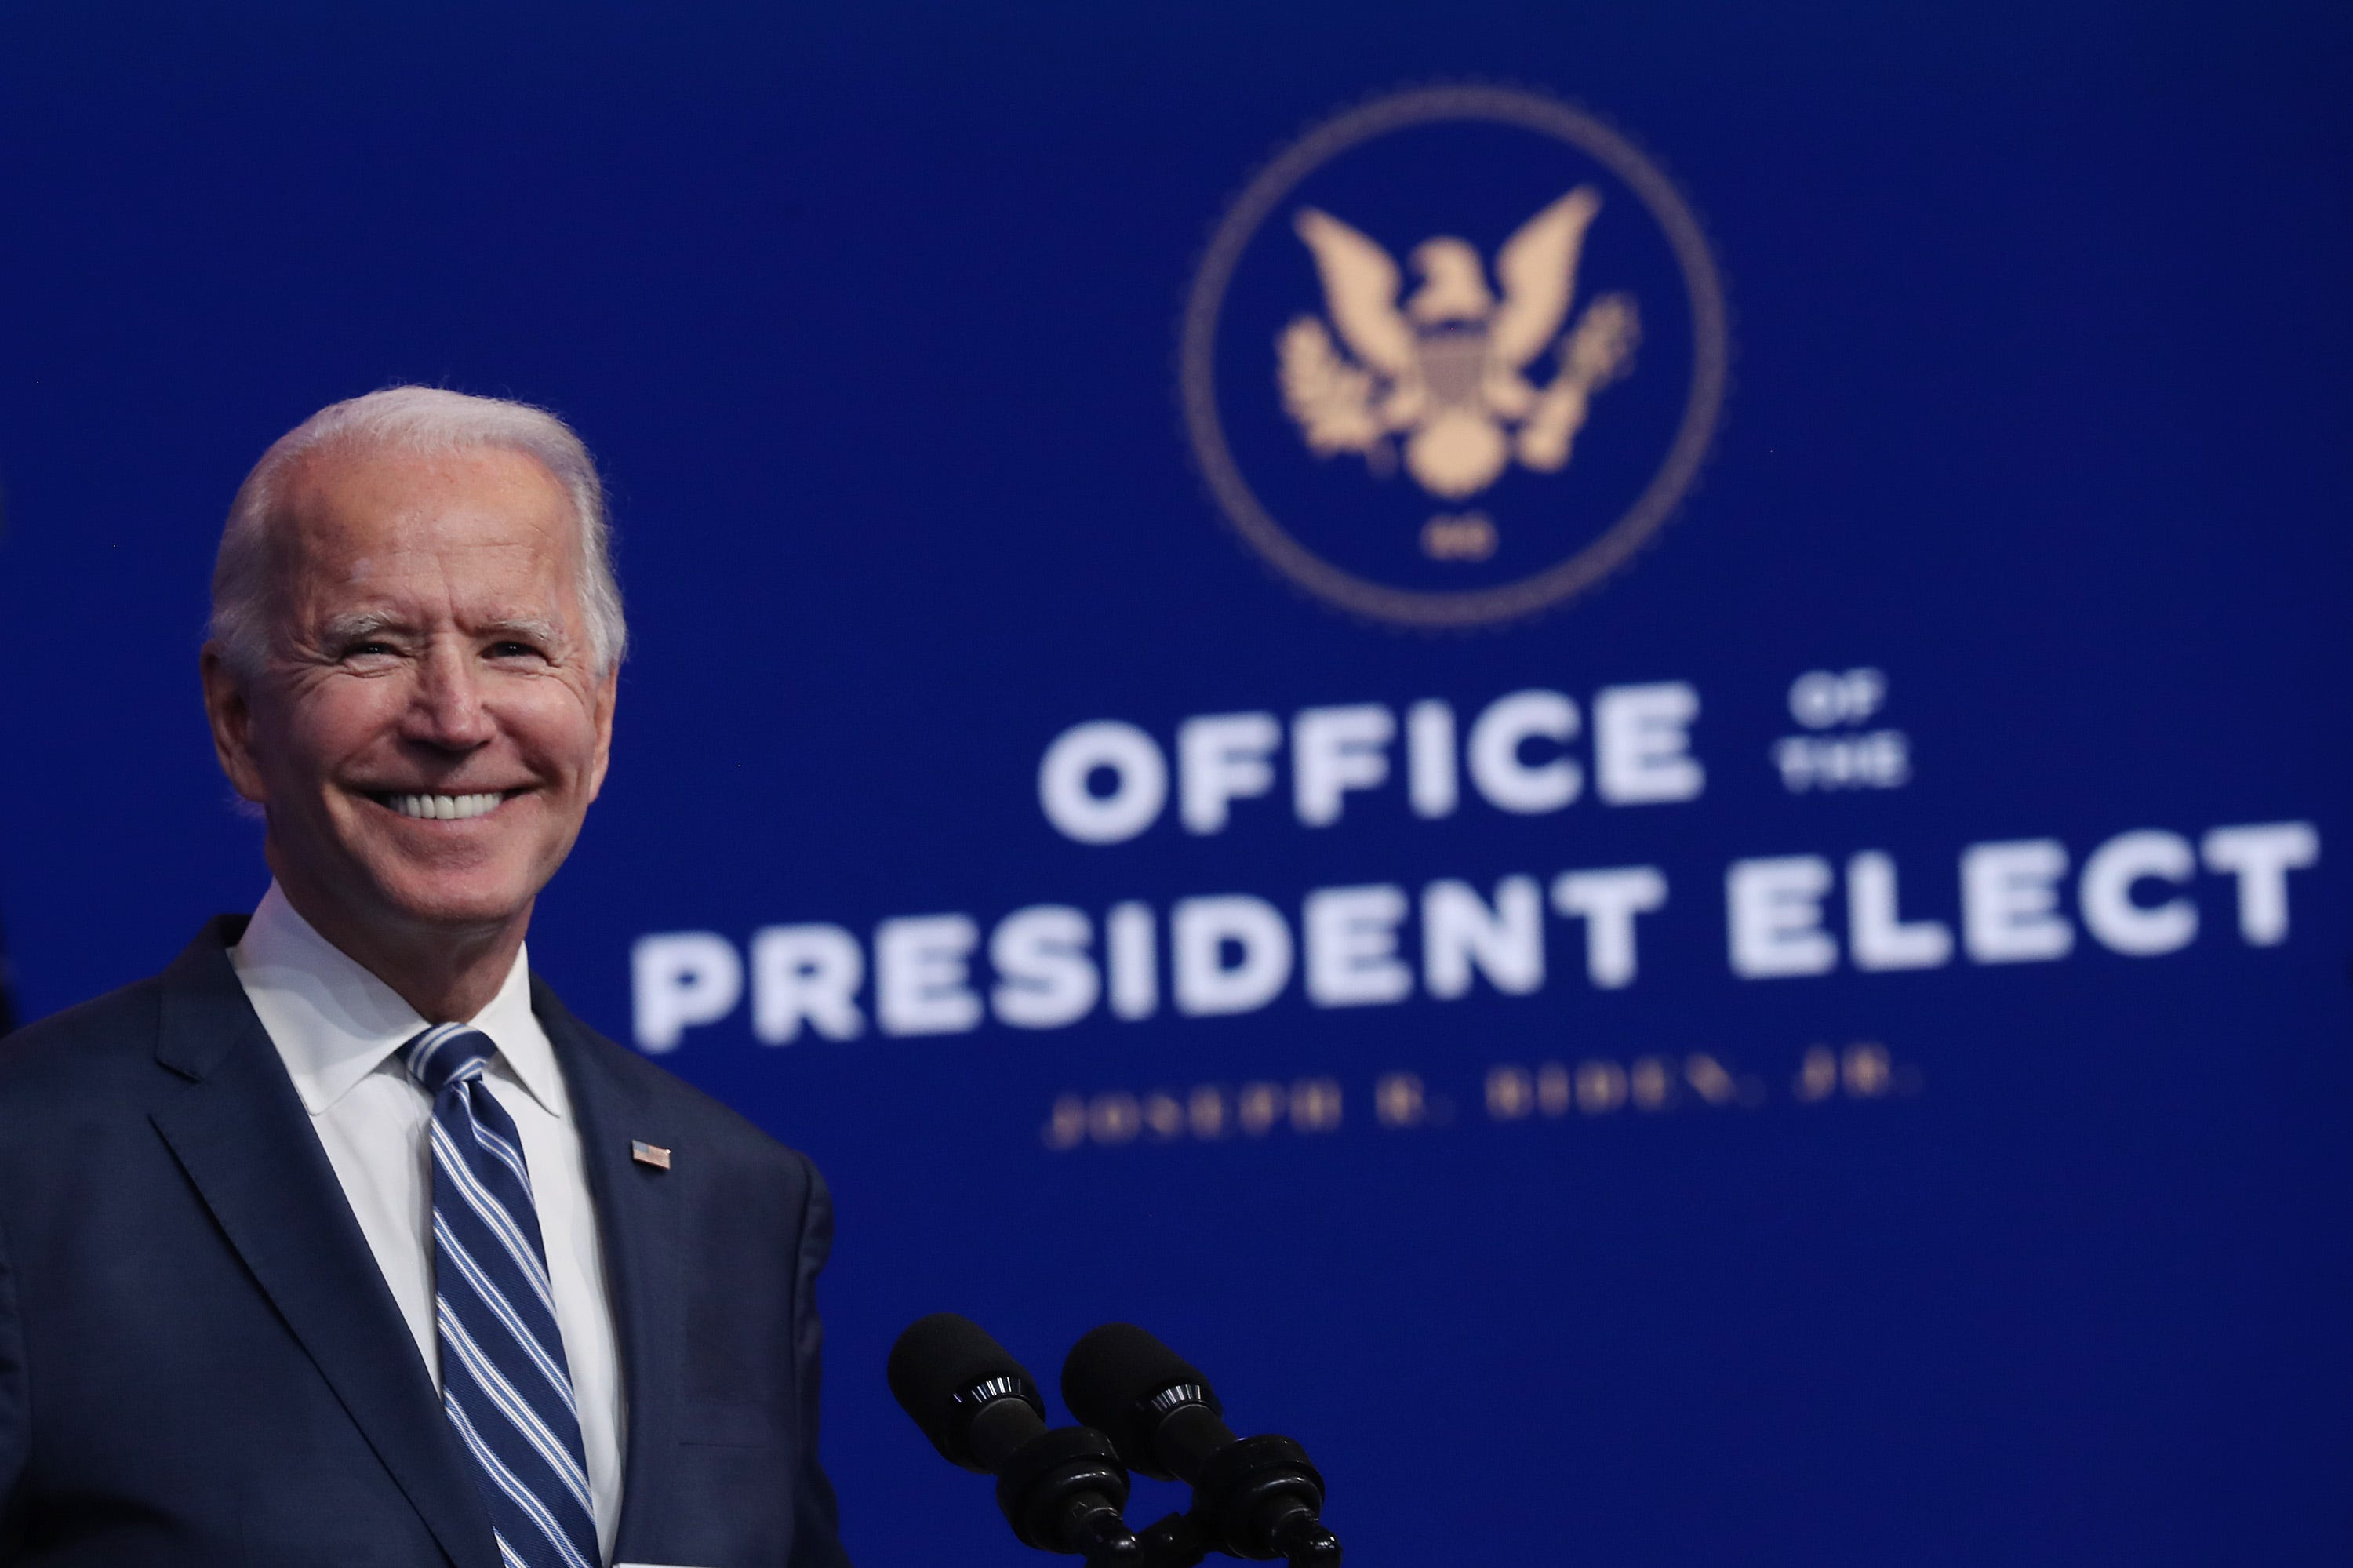 Biden picks for top White House jobs draw contrast with Trump not only on policy but also style